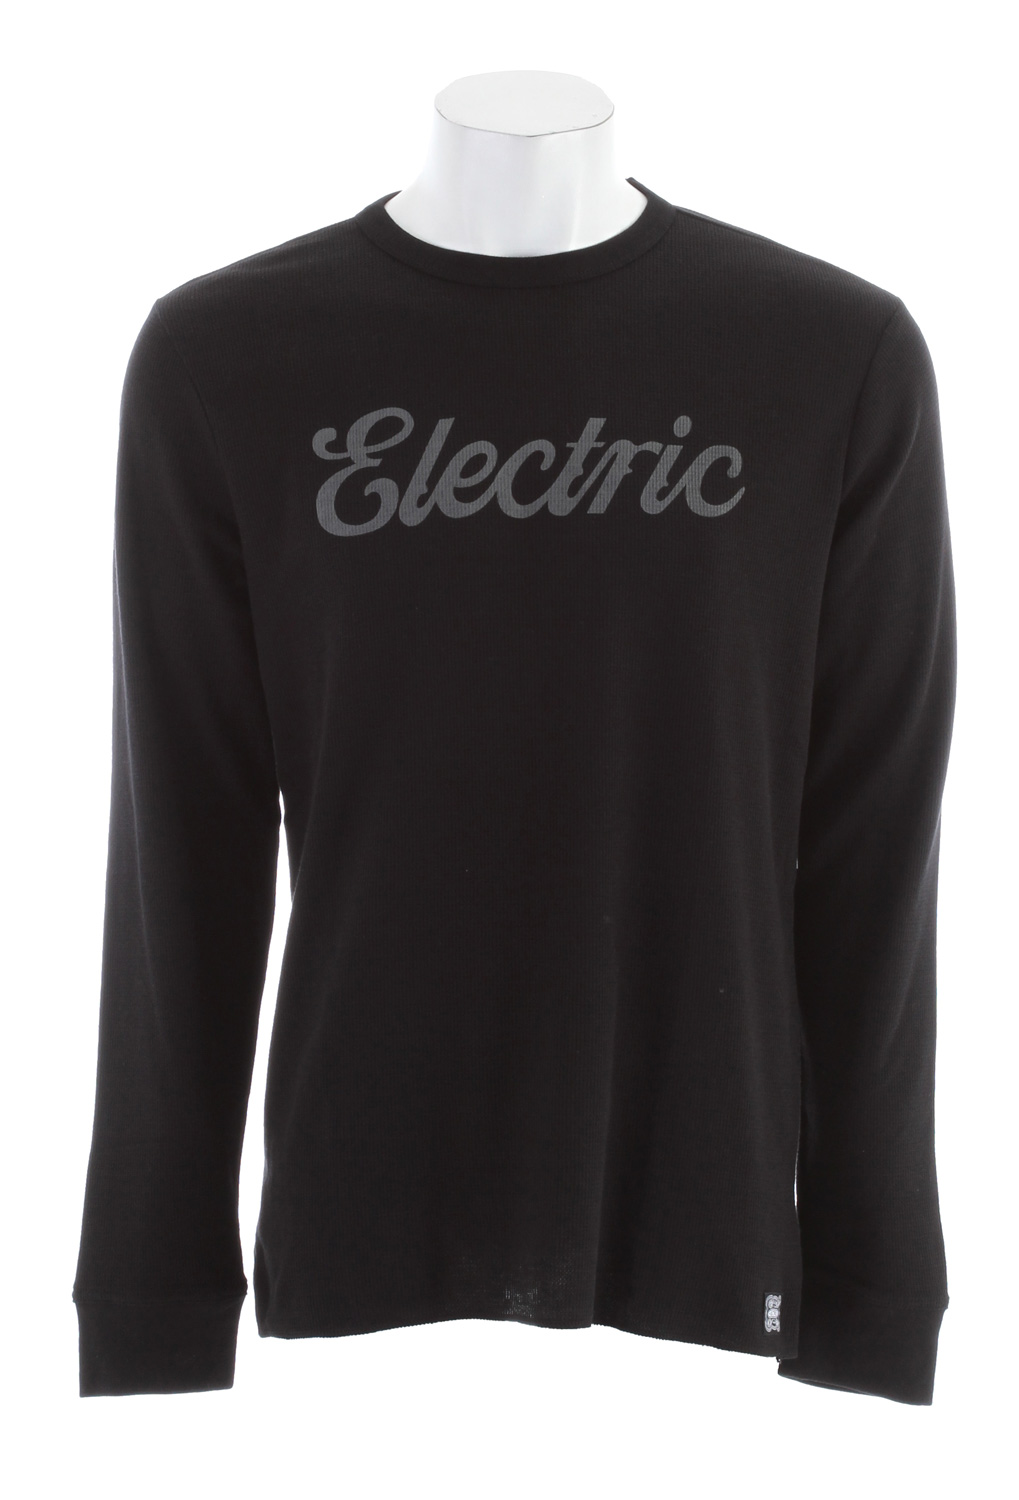 Key Features of the Electric Cursive Thermal:  Men's Thermal  Basic Fit  Chest Script Logo Print  60% Cotton  40% Polyester - $24.95